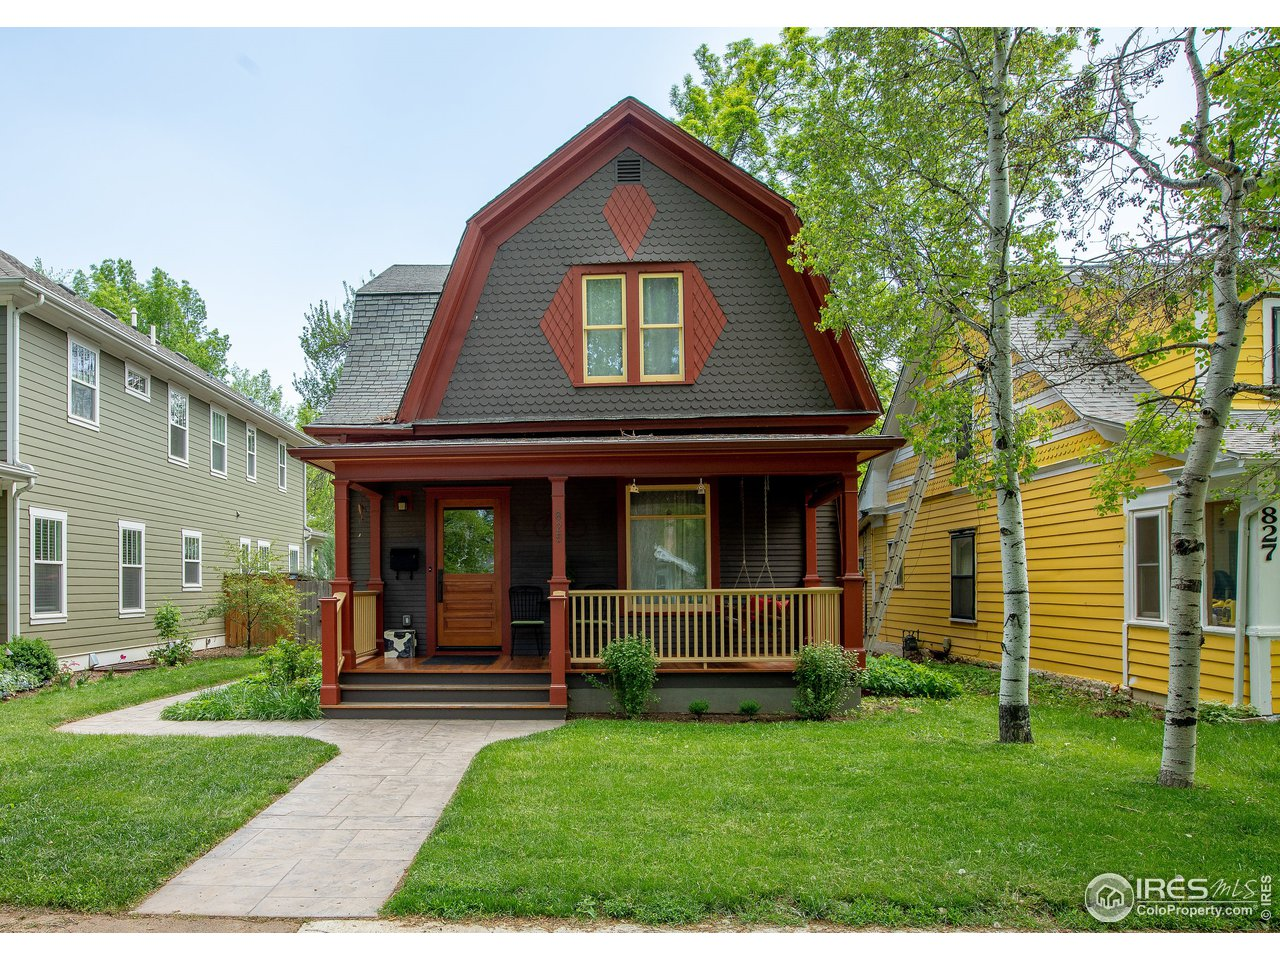 825 W Mountain Ave, Fort Collins CO 80521